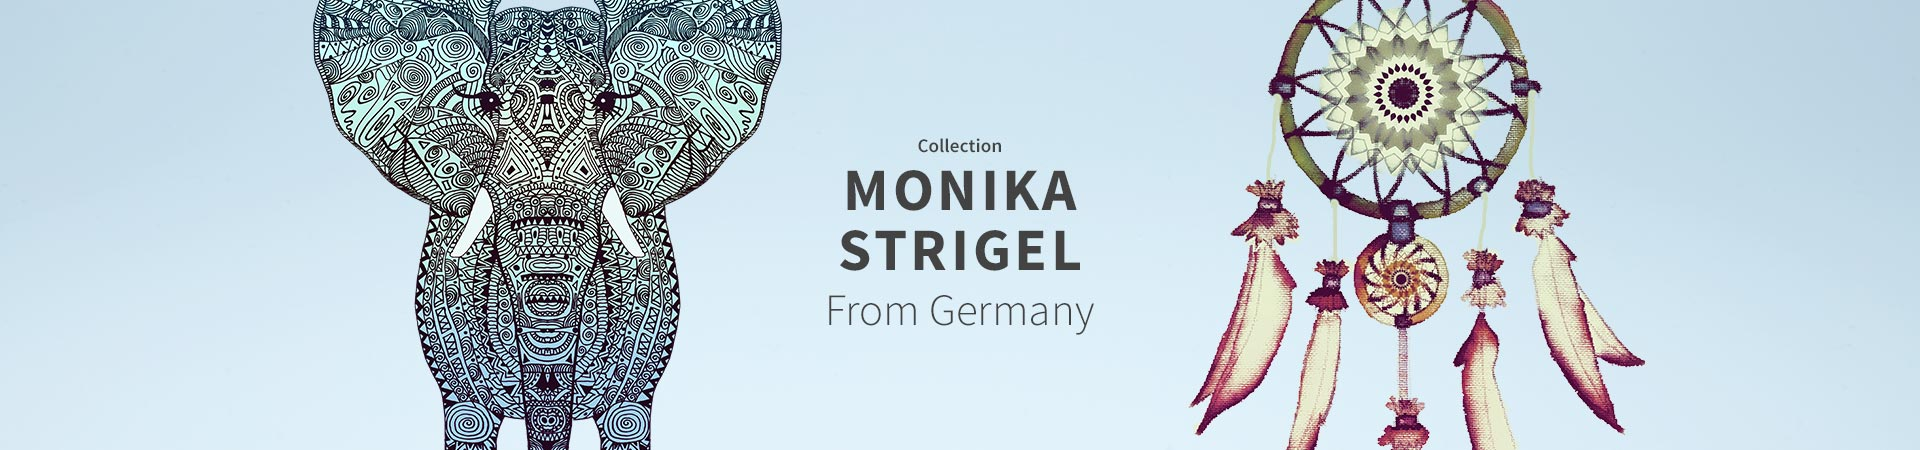 Collection Monika Strigel